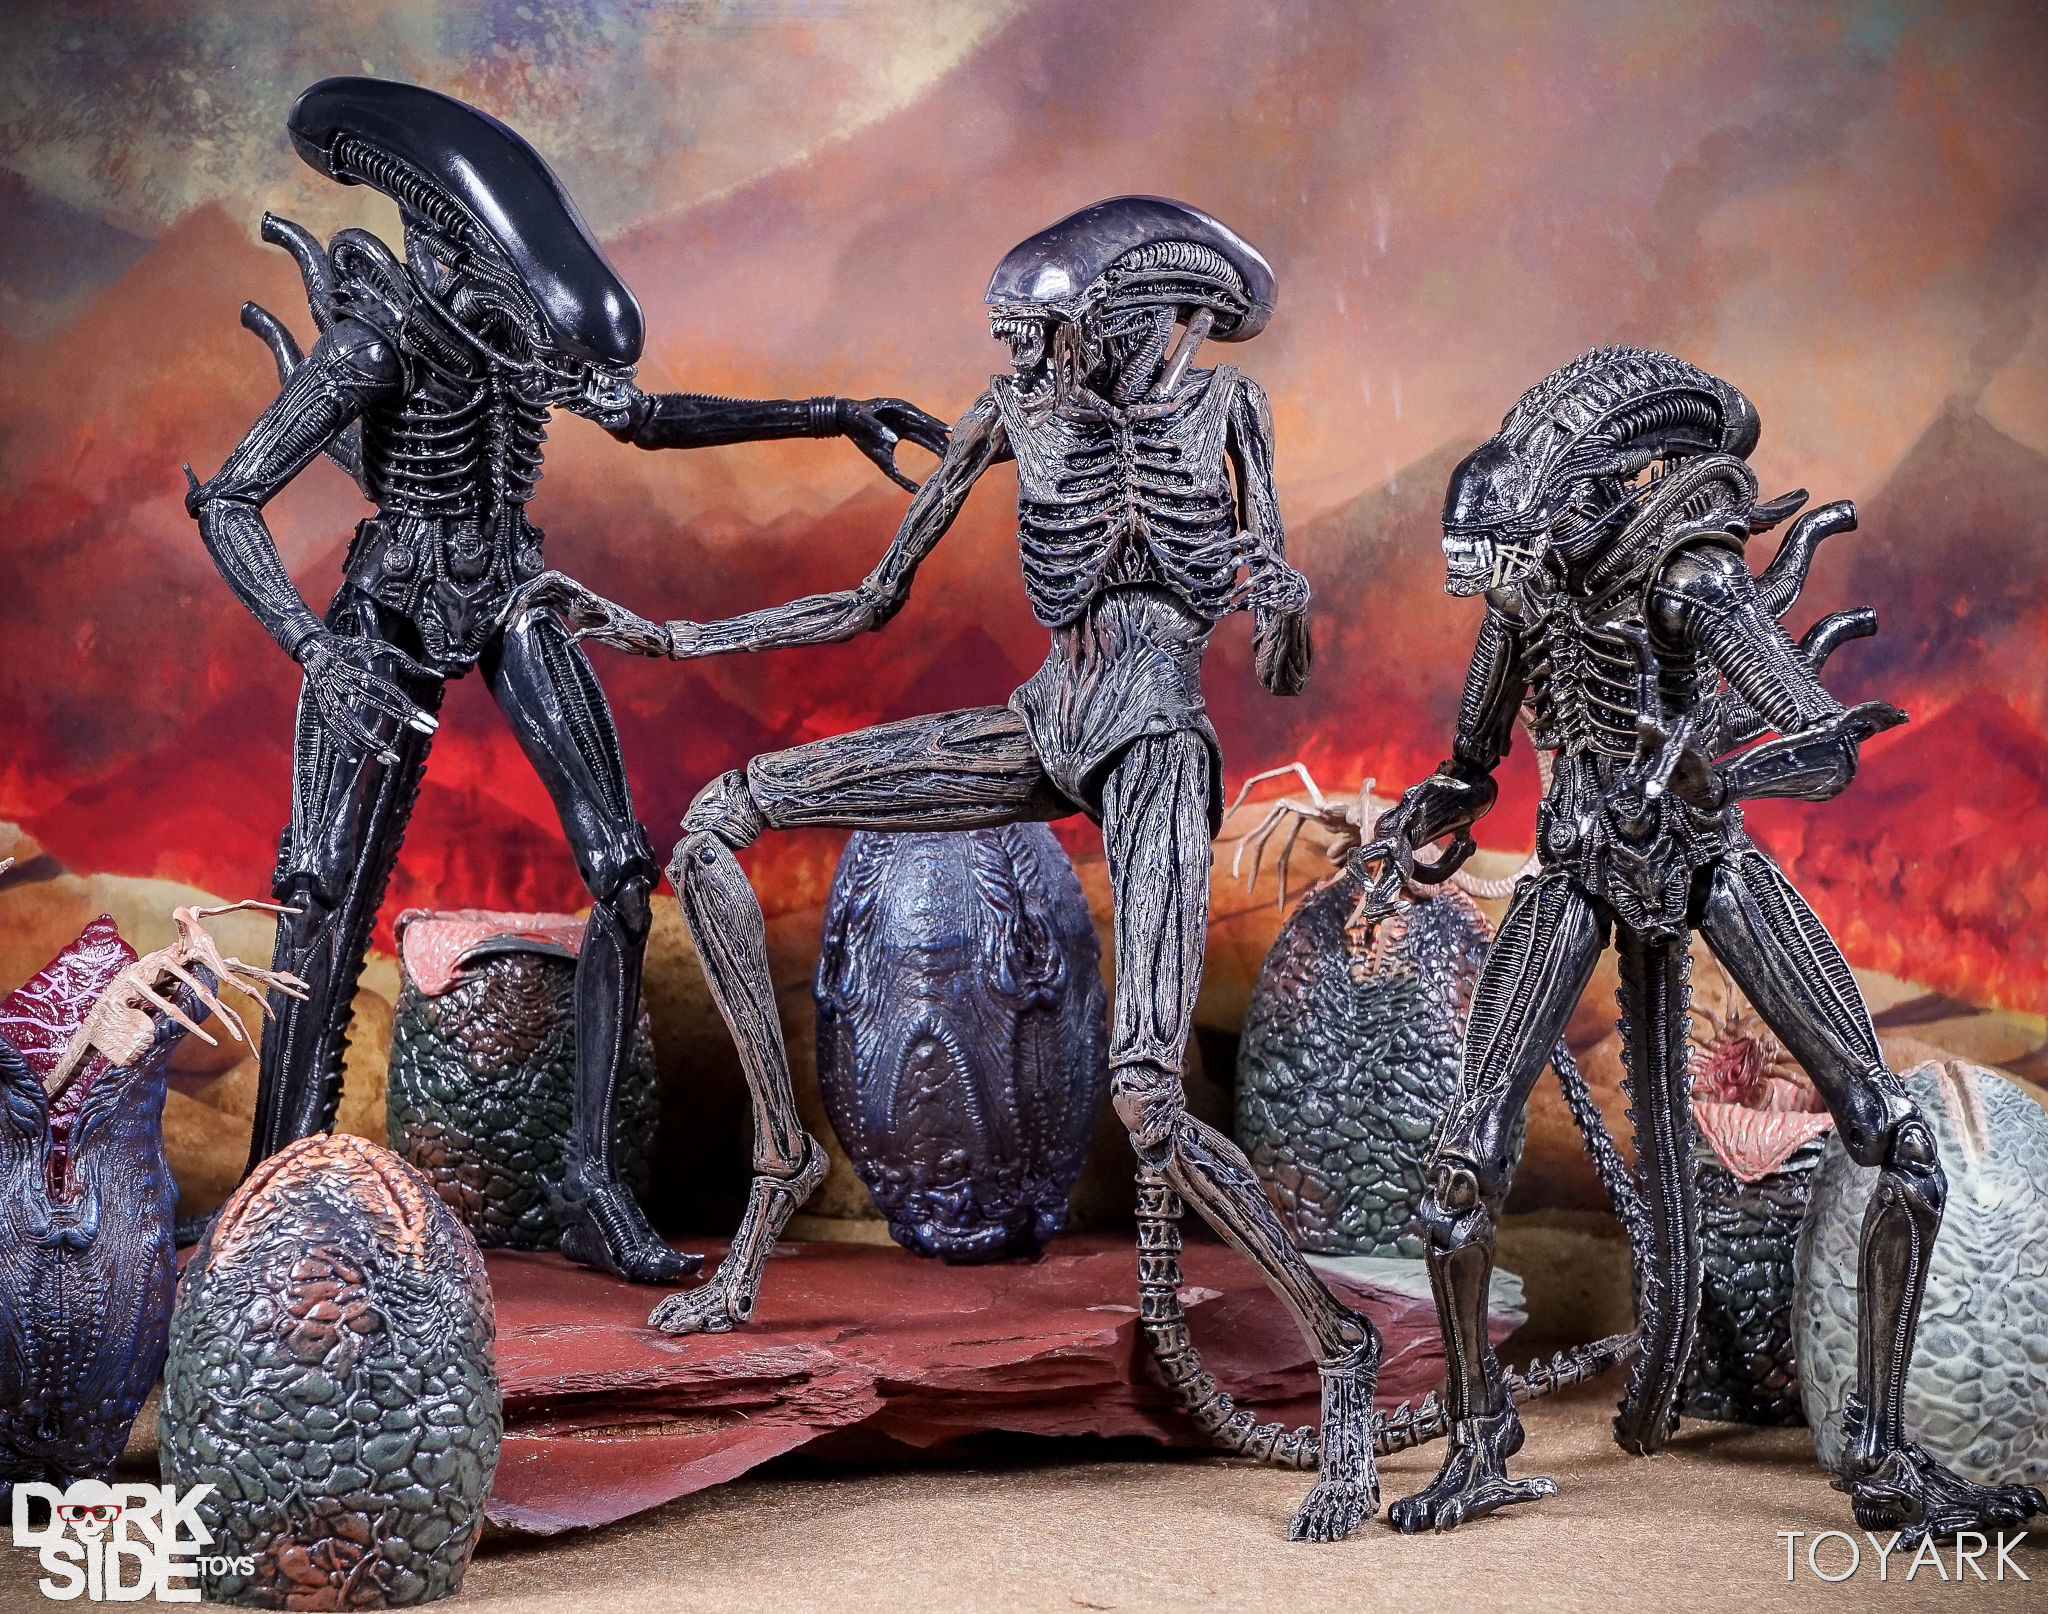 http://news.toyark.com/wp-content/uploads/sites/4/2017/08/NECA-Alien-Covenant-Figures-056.jpg